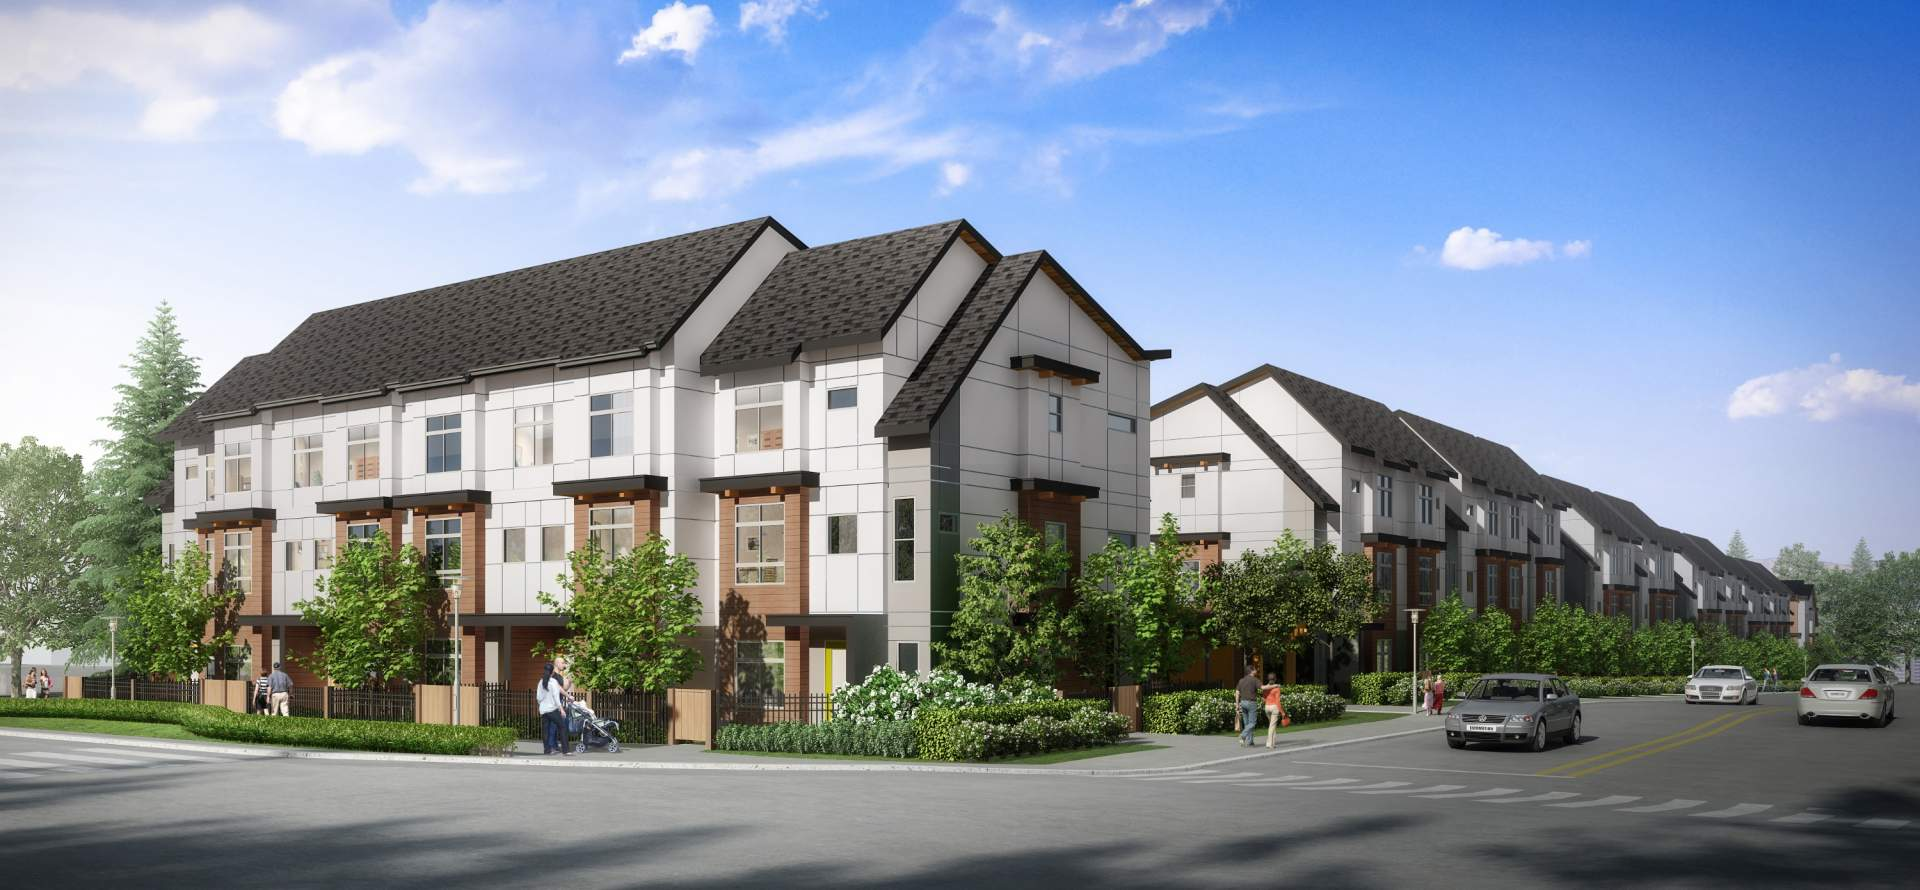 Willow Living By New Story Homes – Availability, Plans, Prices